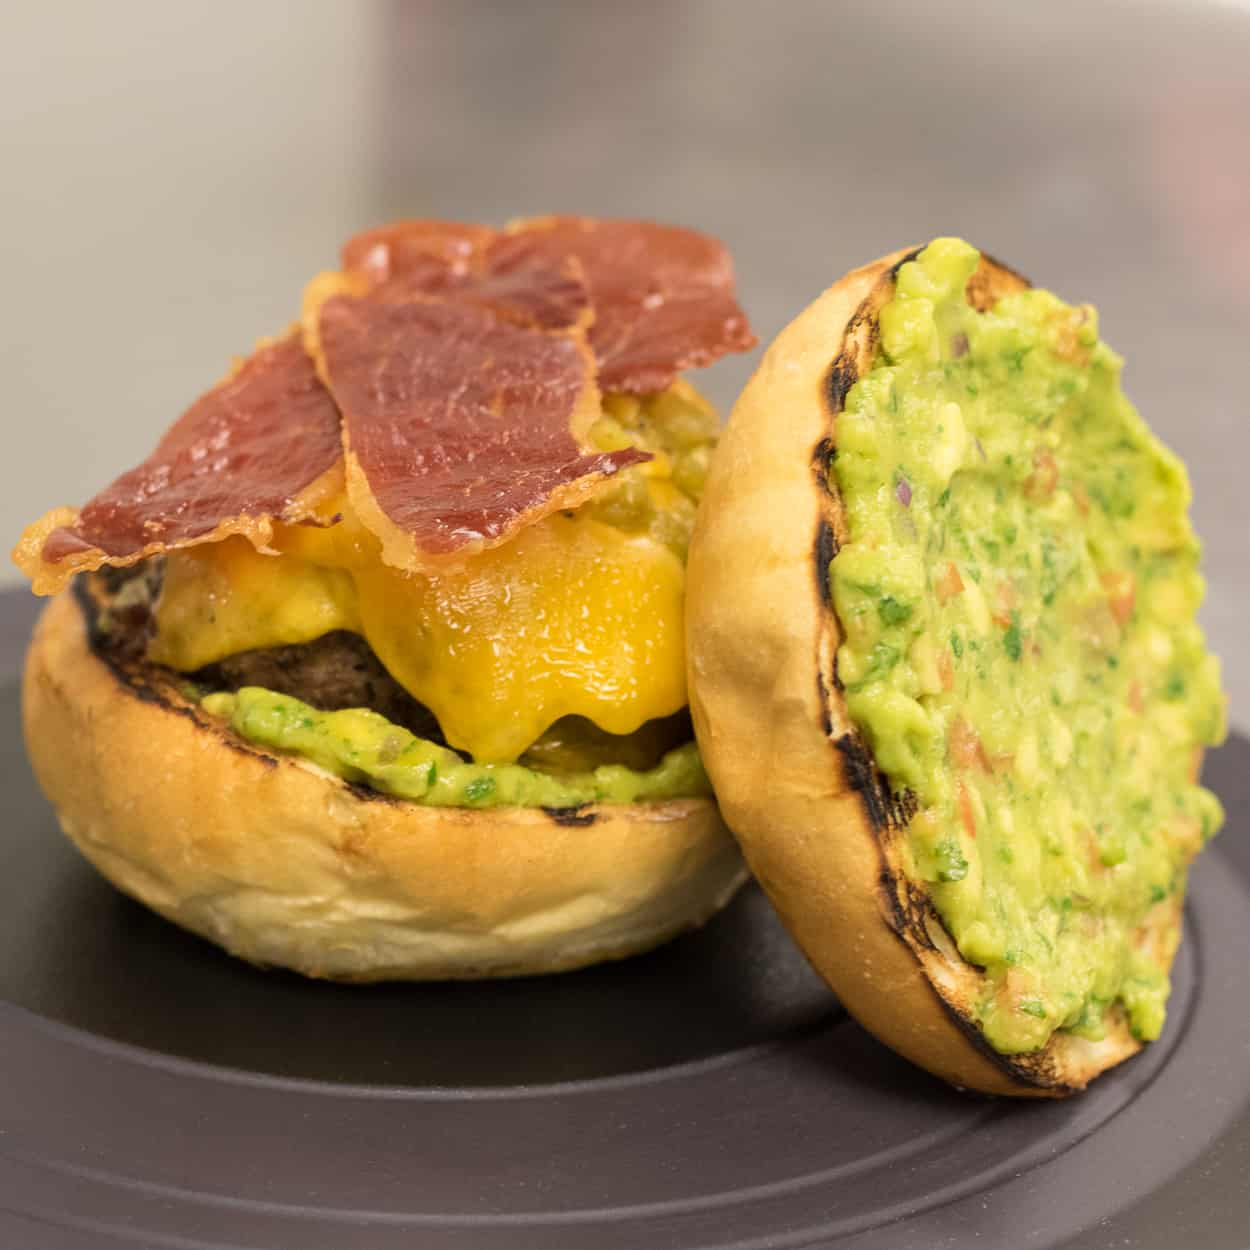 CONTENDERS Green Chile Cheeseburger Smackdown